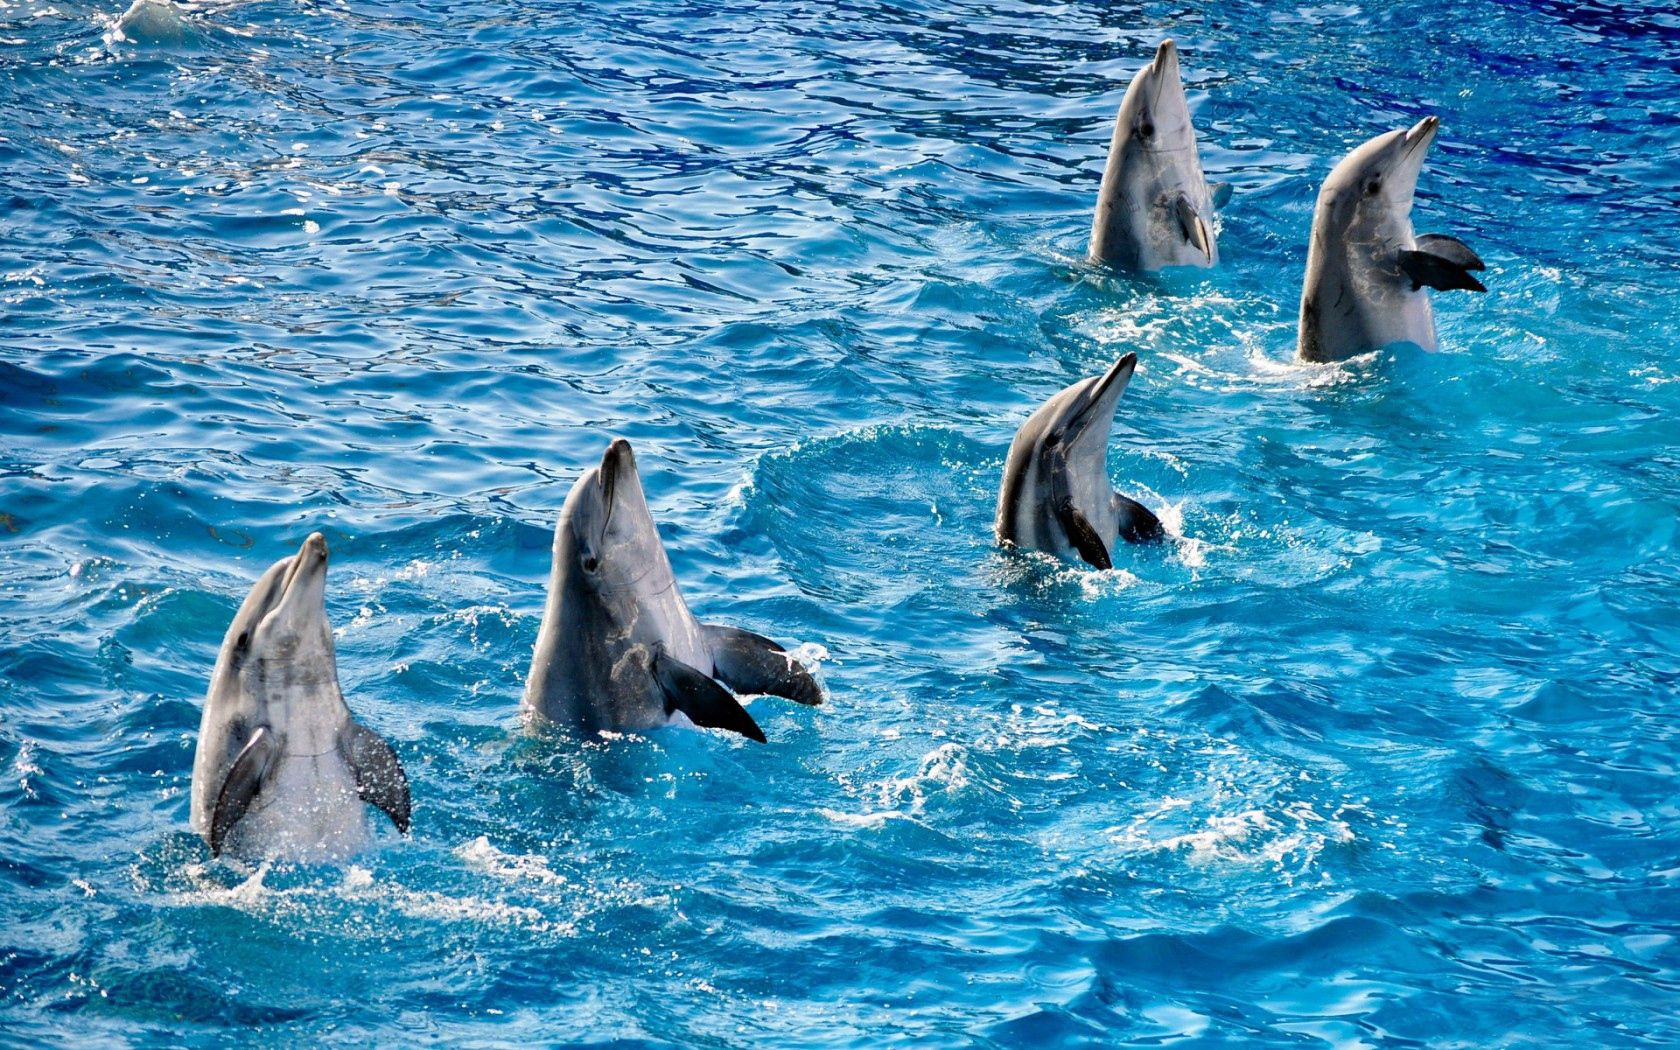 144891 download wallpaper Animals, Water, Dolfins, Ripples, Ripple, Pool, Fins, Five screensavers and pictures for free